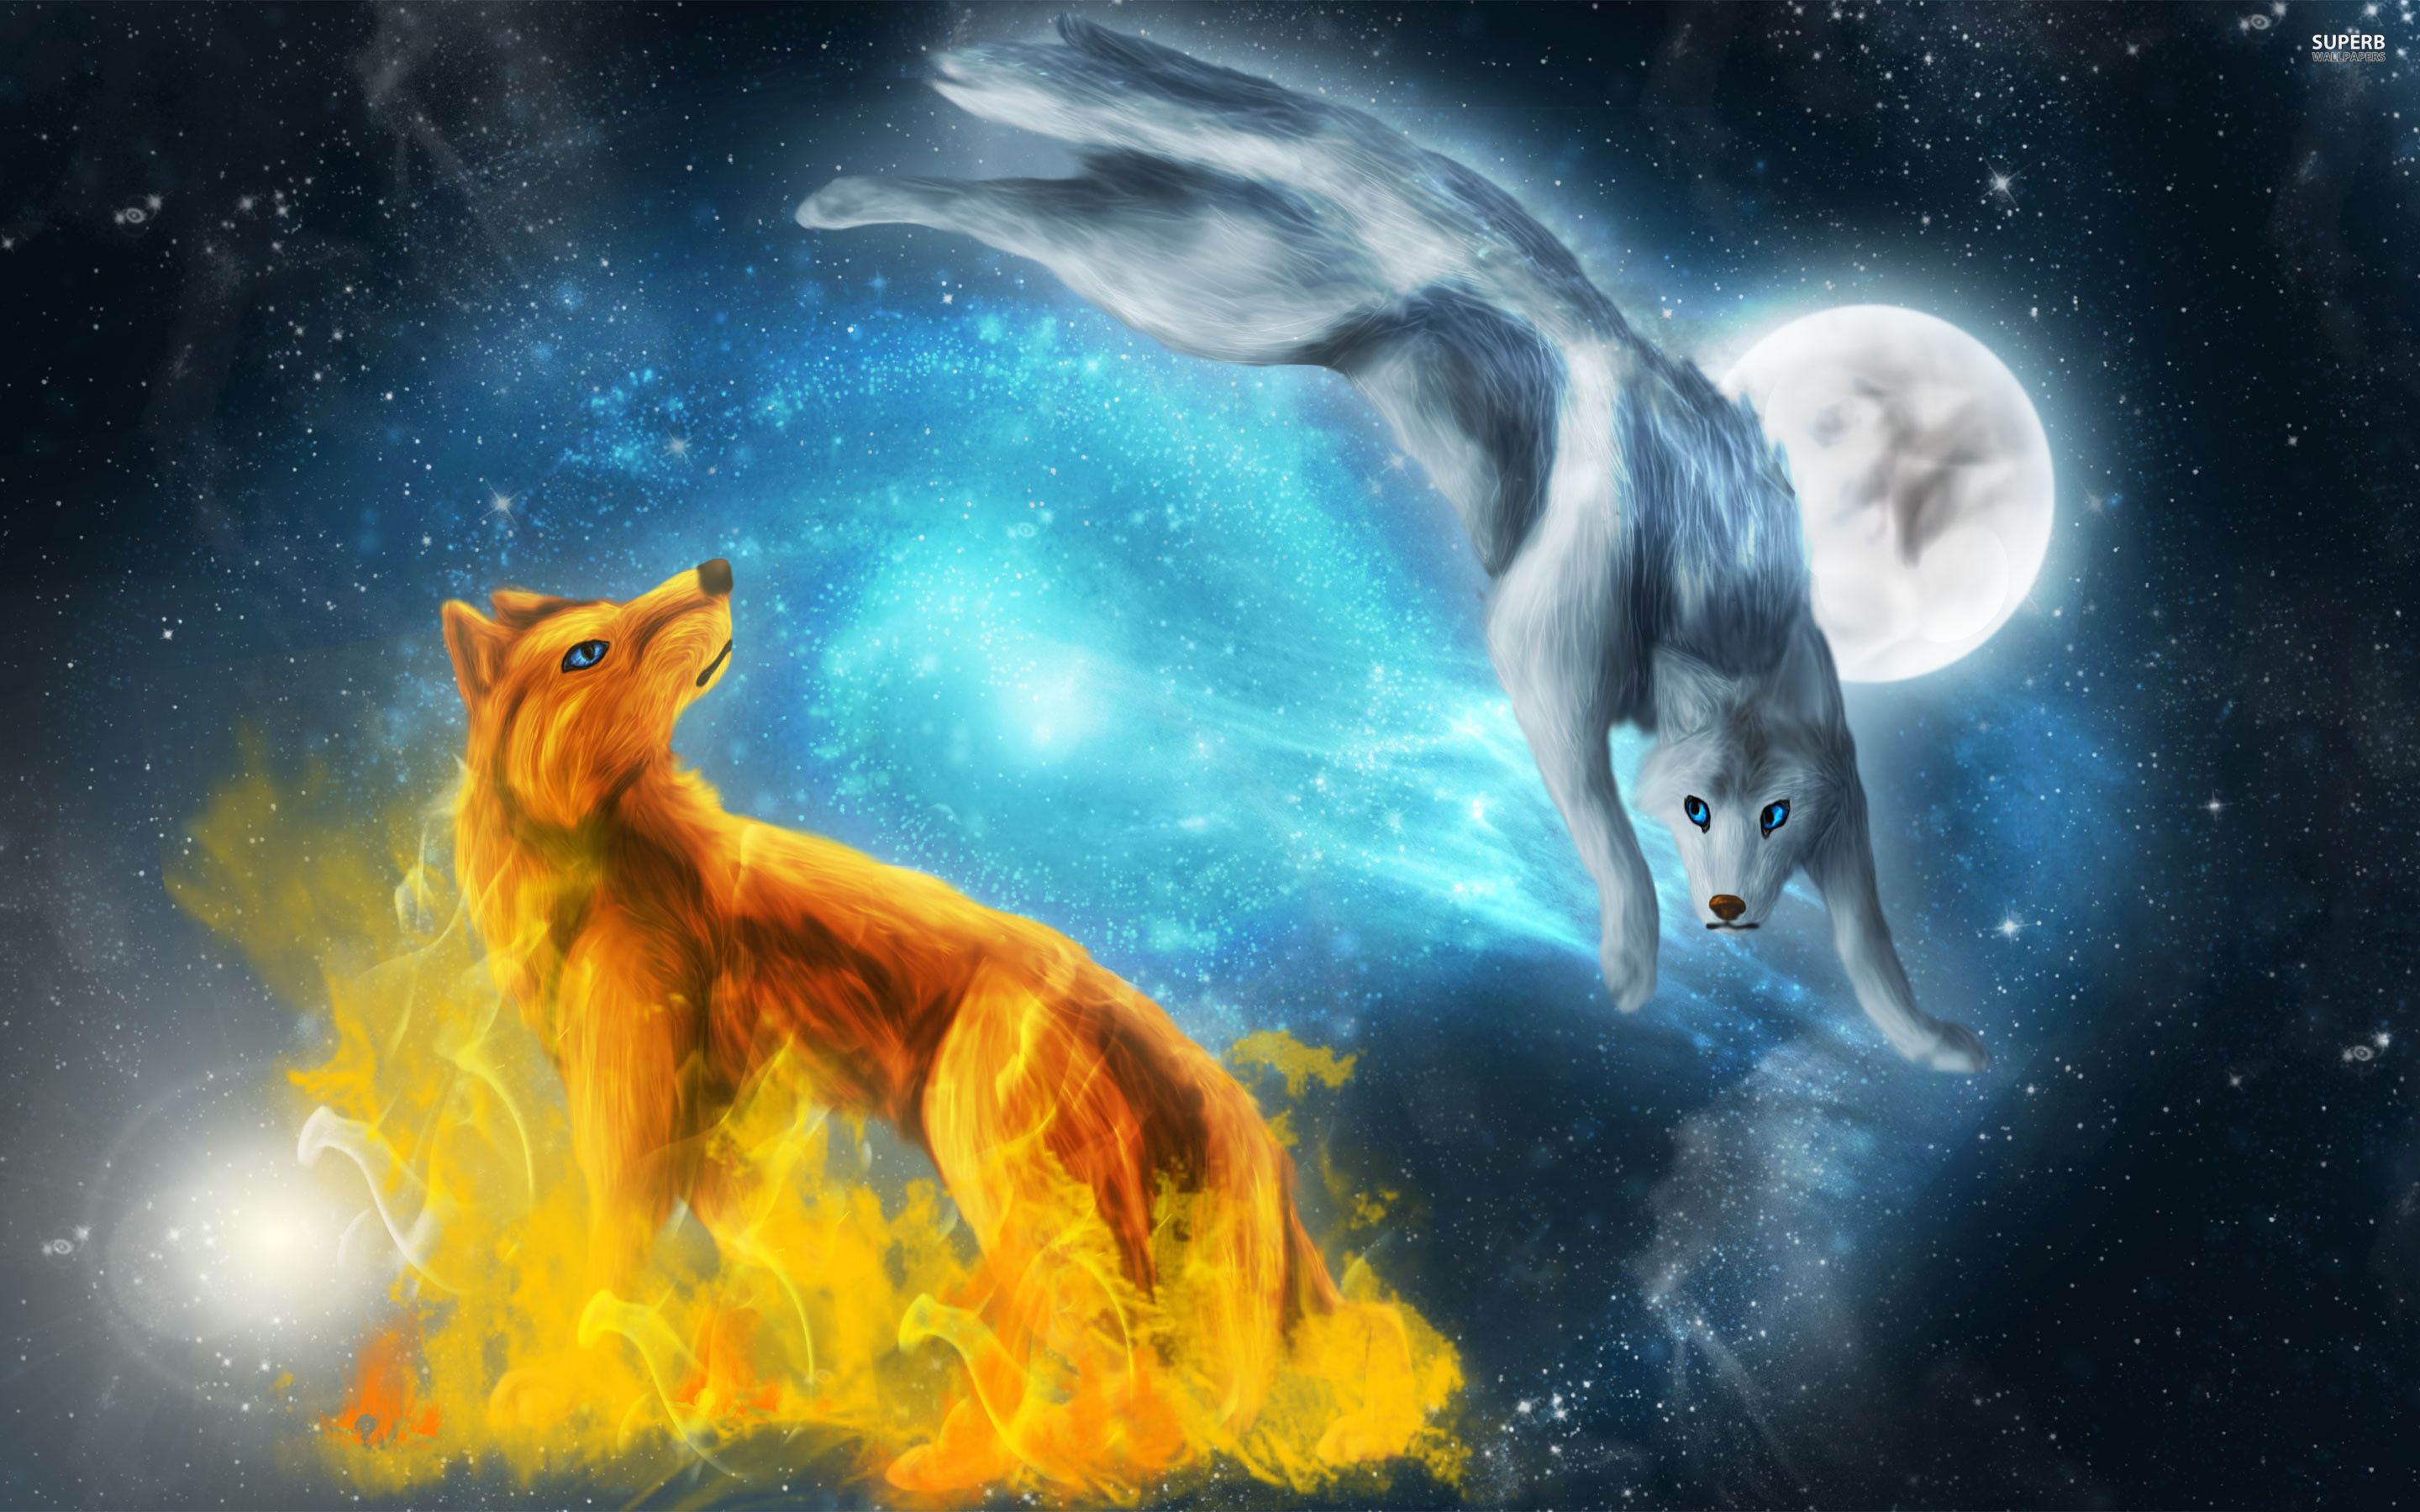 Wolves Wallpapers in High Definition | 2880×1800, by Mohammed Ober